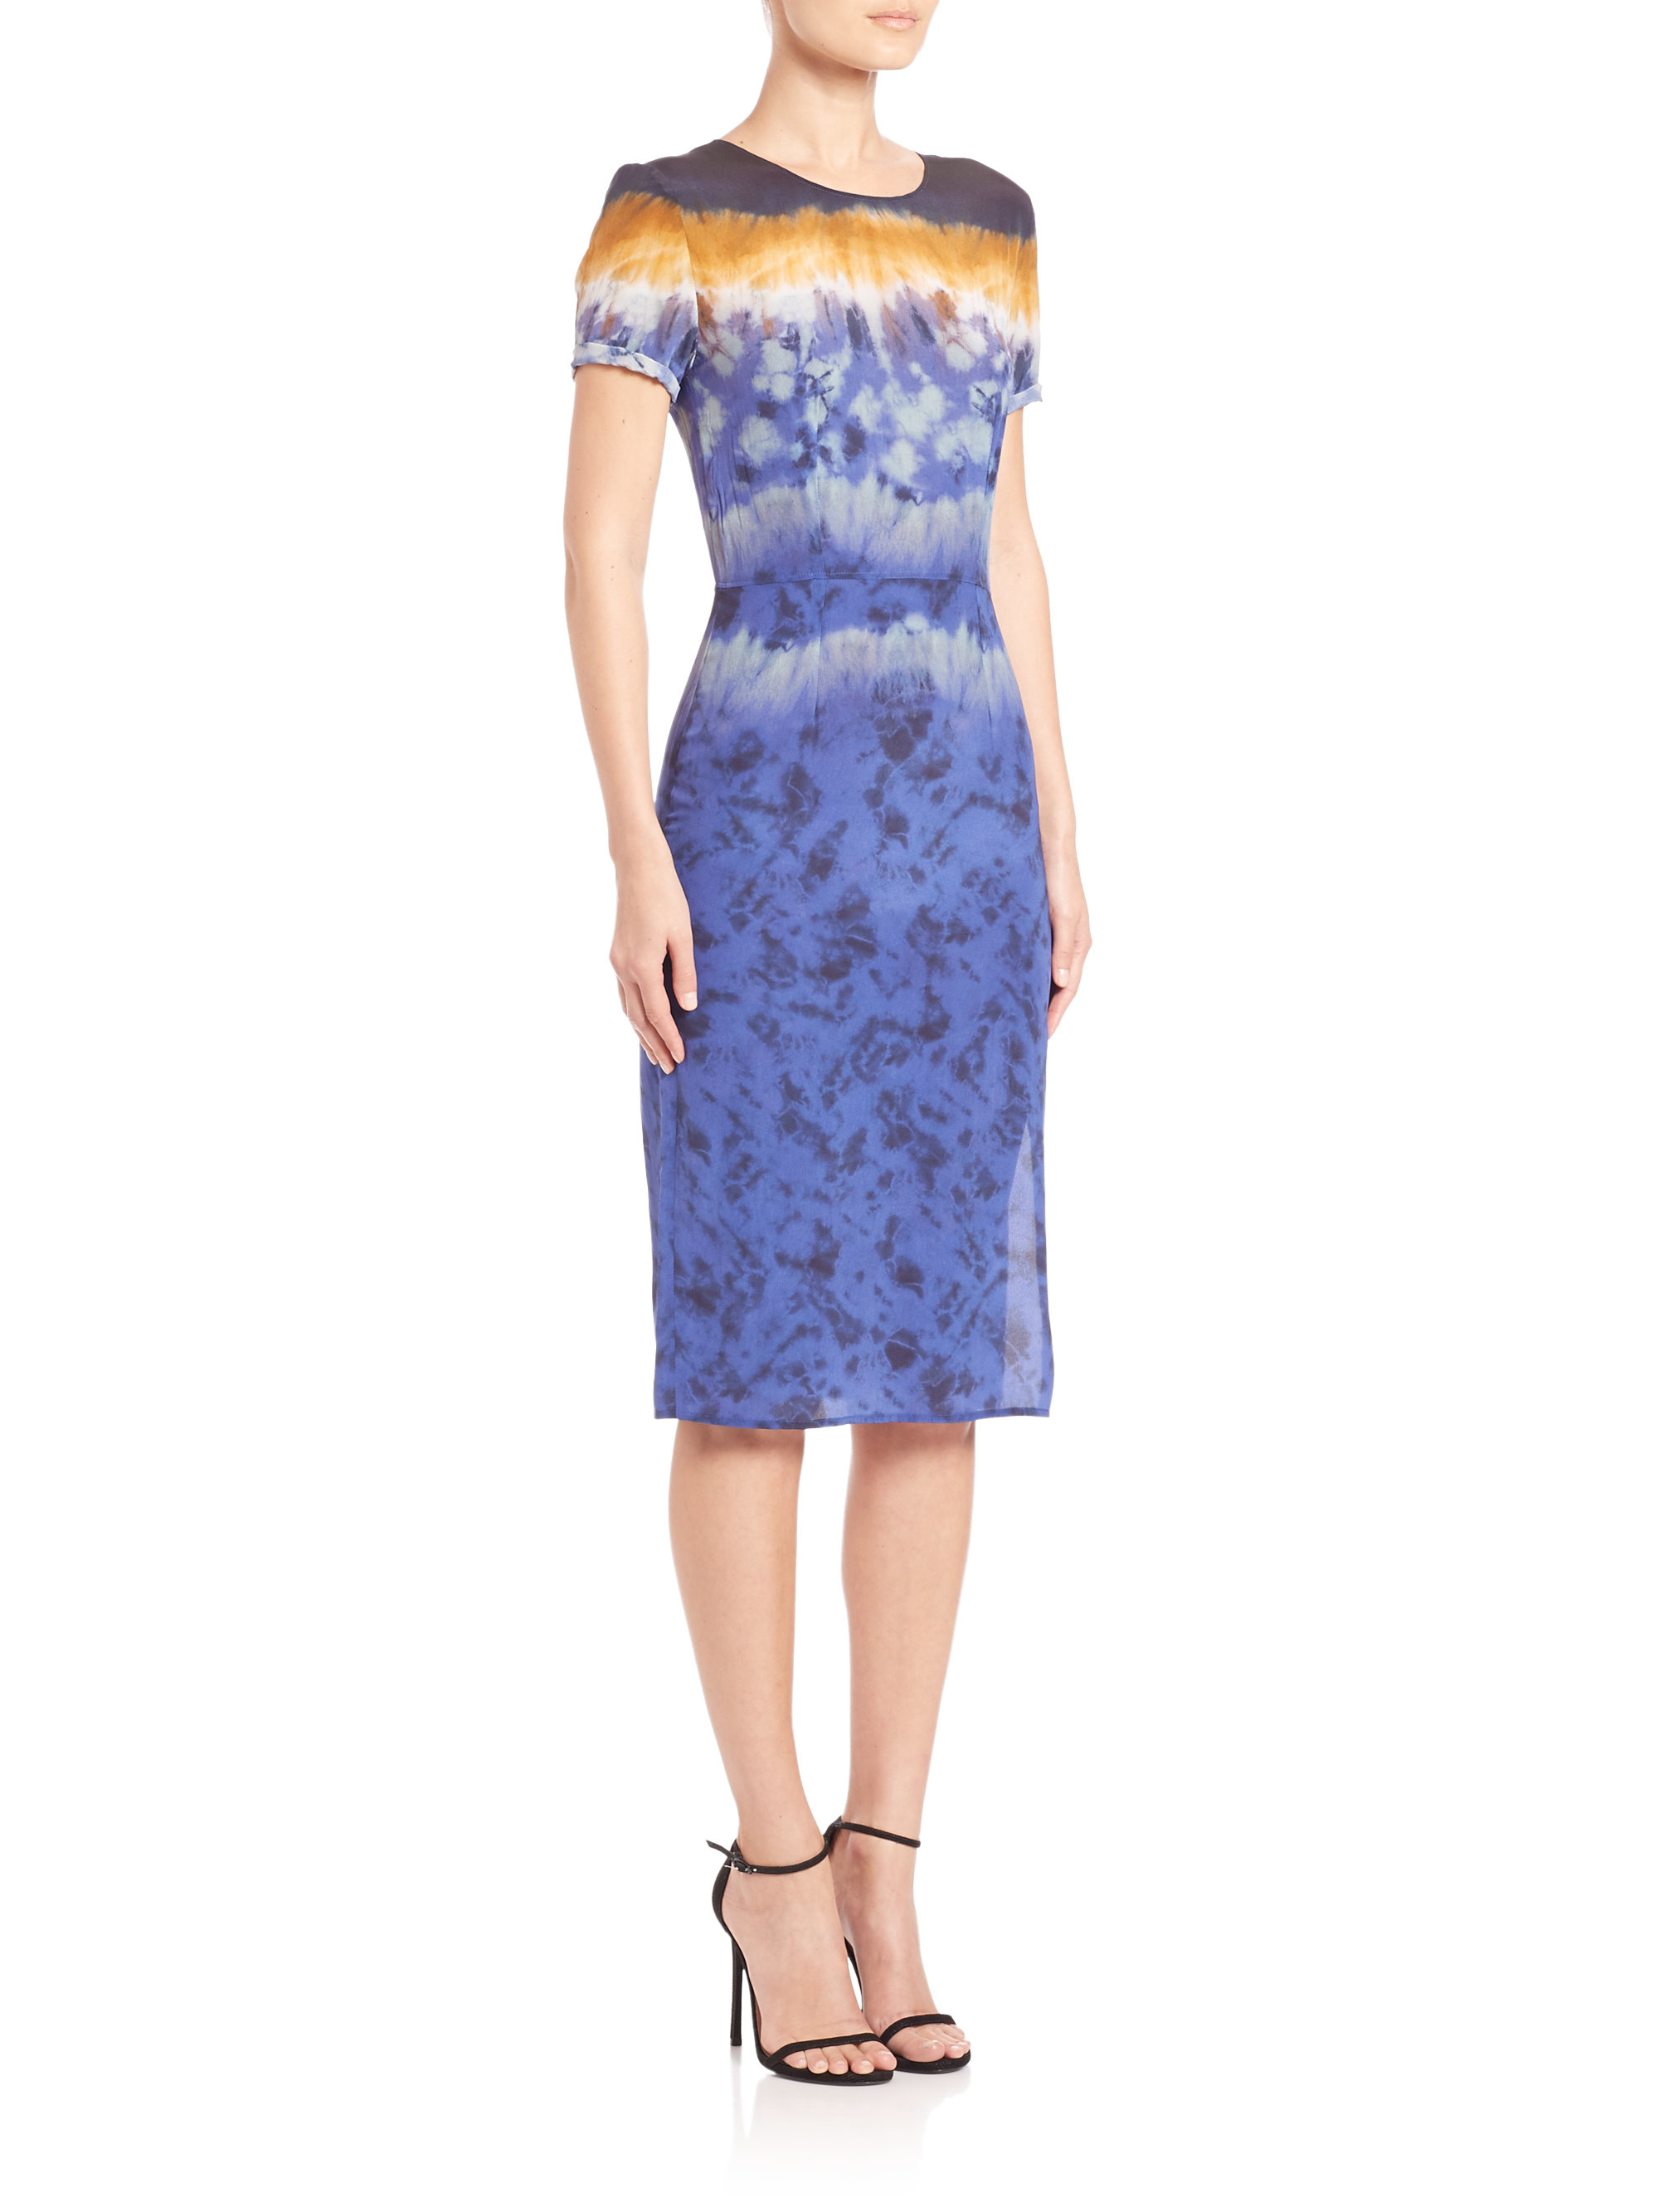 Womens Tie-Dyed Silk Midi-Dress Altuzarra agsSDn